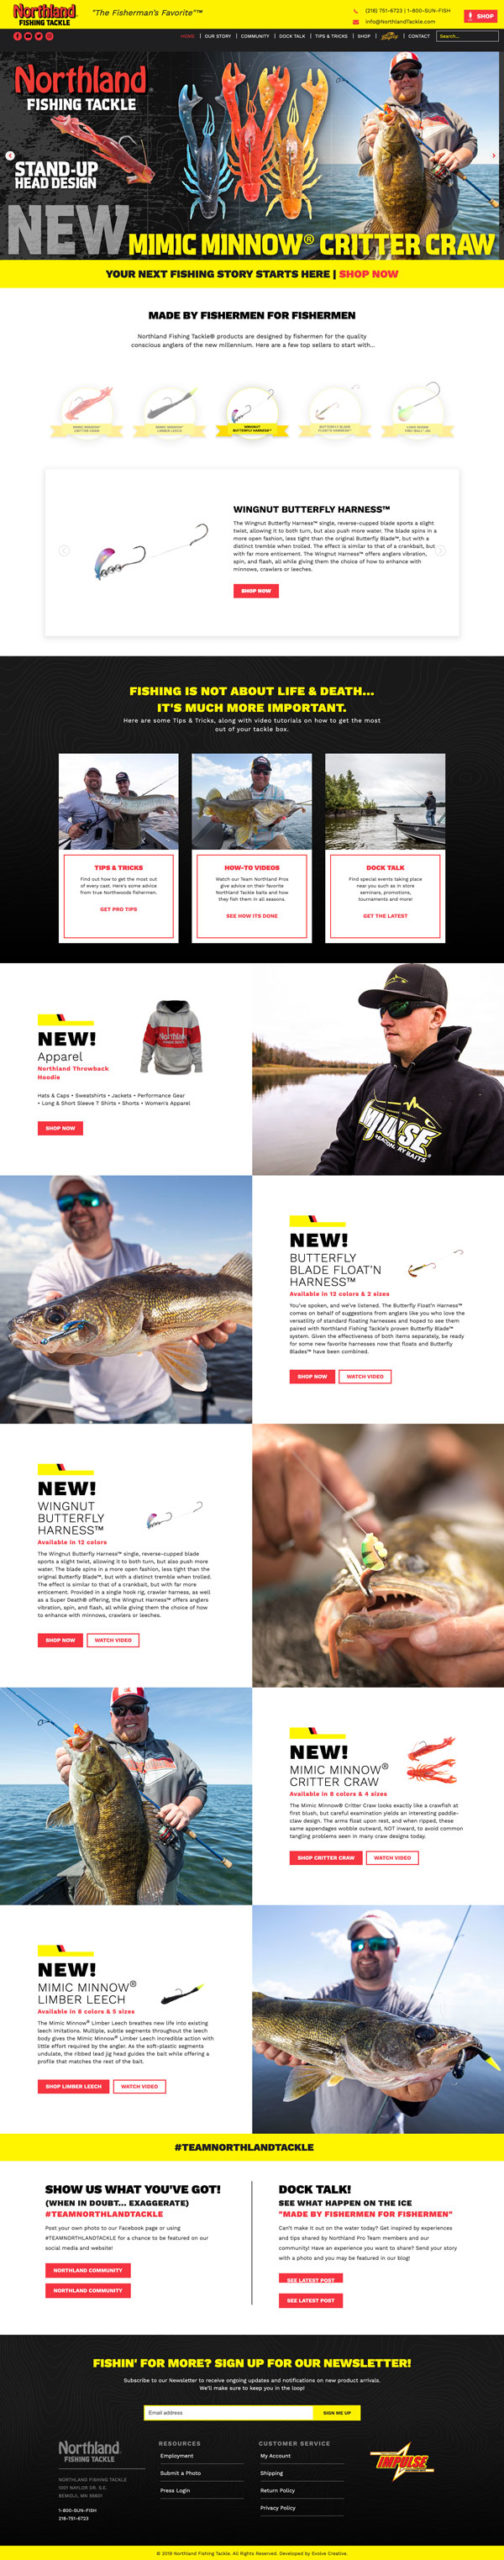 Northland Fishing Tackle Website